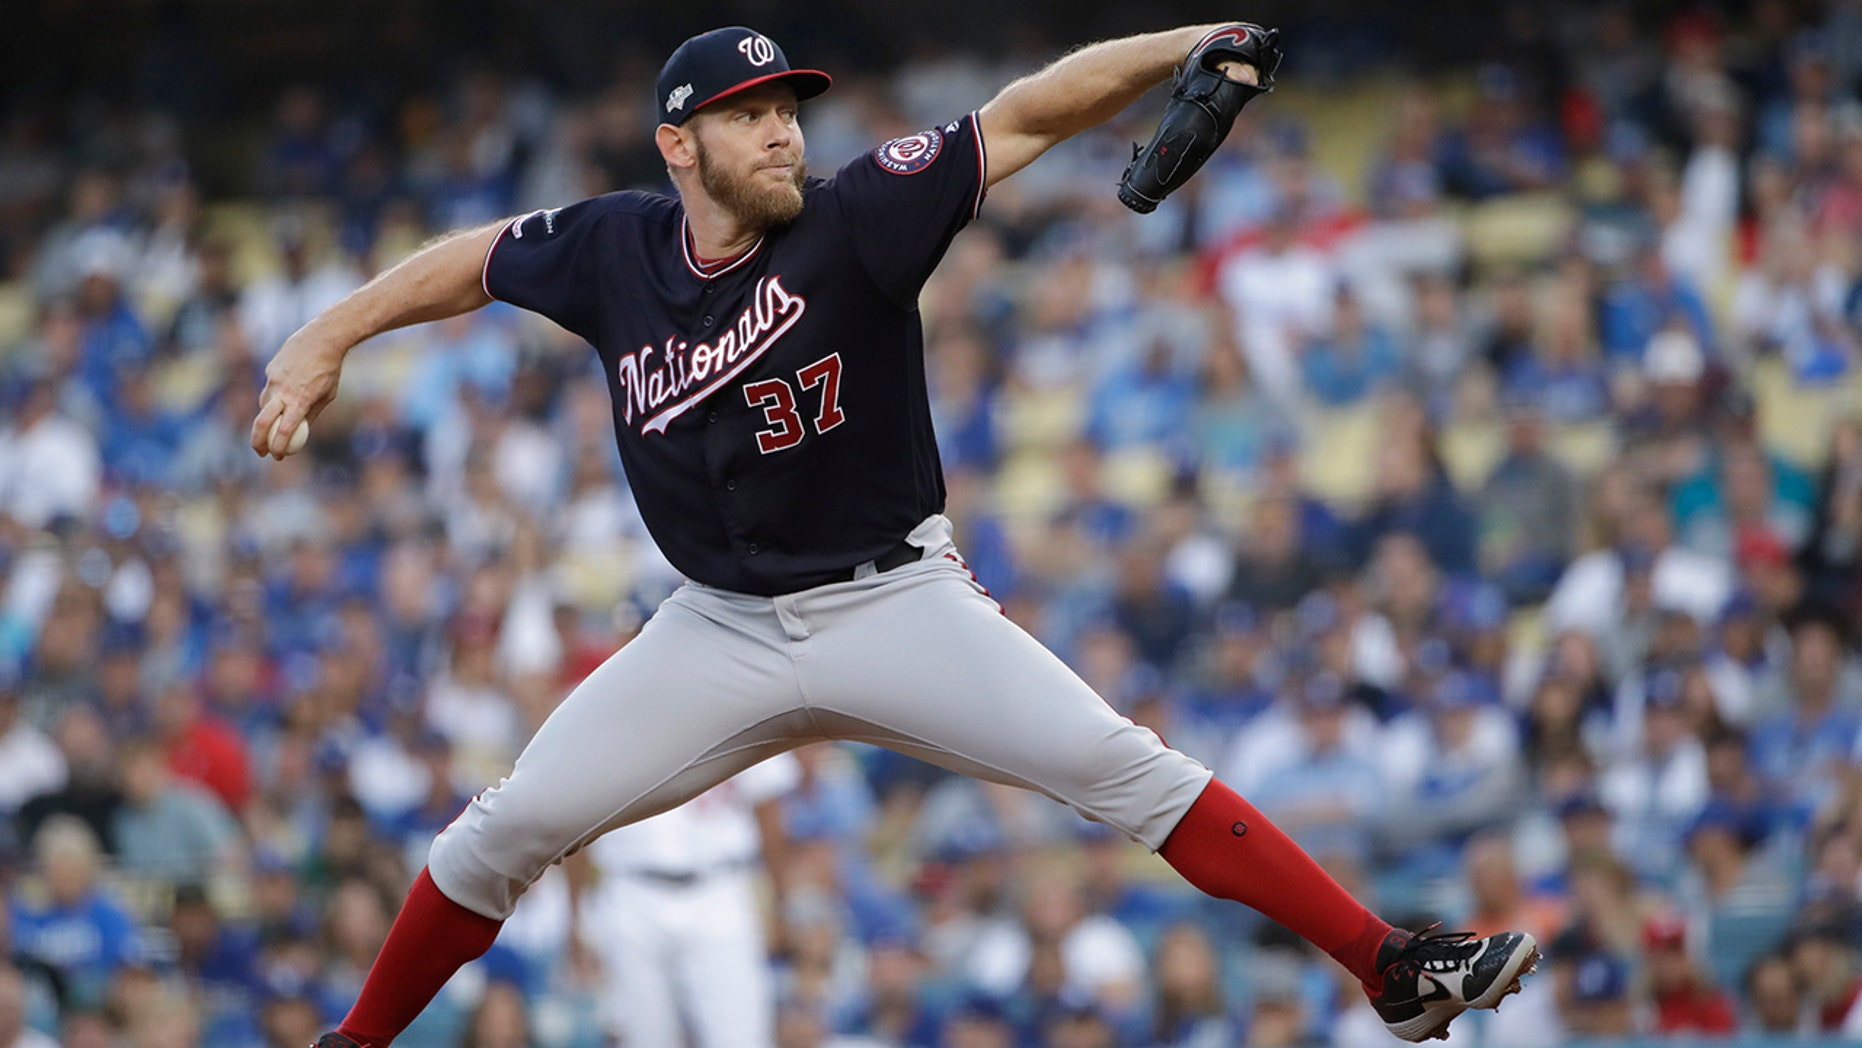 FILE - In this Oct. 9, 2019, file photo, Washington Nationals starting pitcher Stephen Strasburg throws to a Los Angeles Dodgers batter during the first inning in Game 5 of a baseball National League Division Series, in Los Angeles. World Series MVP Stephen Strasburg is staying with the Washington Nationals. The right-hander has agreed to a record $245 million, seven-year contract, a person familiar with the negotiations told The Associated Press on Monday, Dec. 9, 2019. The person spoke on condition of anonymity at baseball's annual winter meetings because the agreement had not been announced. (AP Photo/Marcio Jose Sanchez, File)